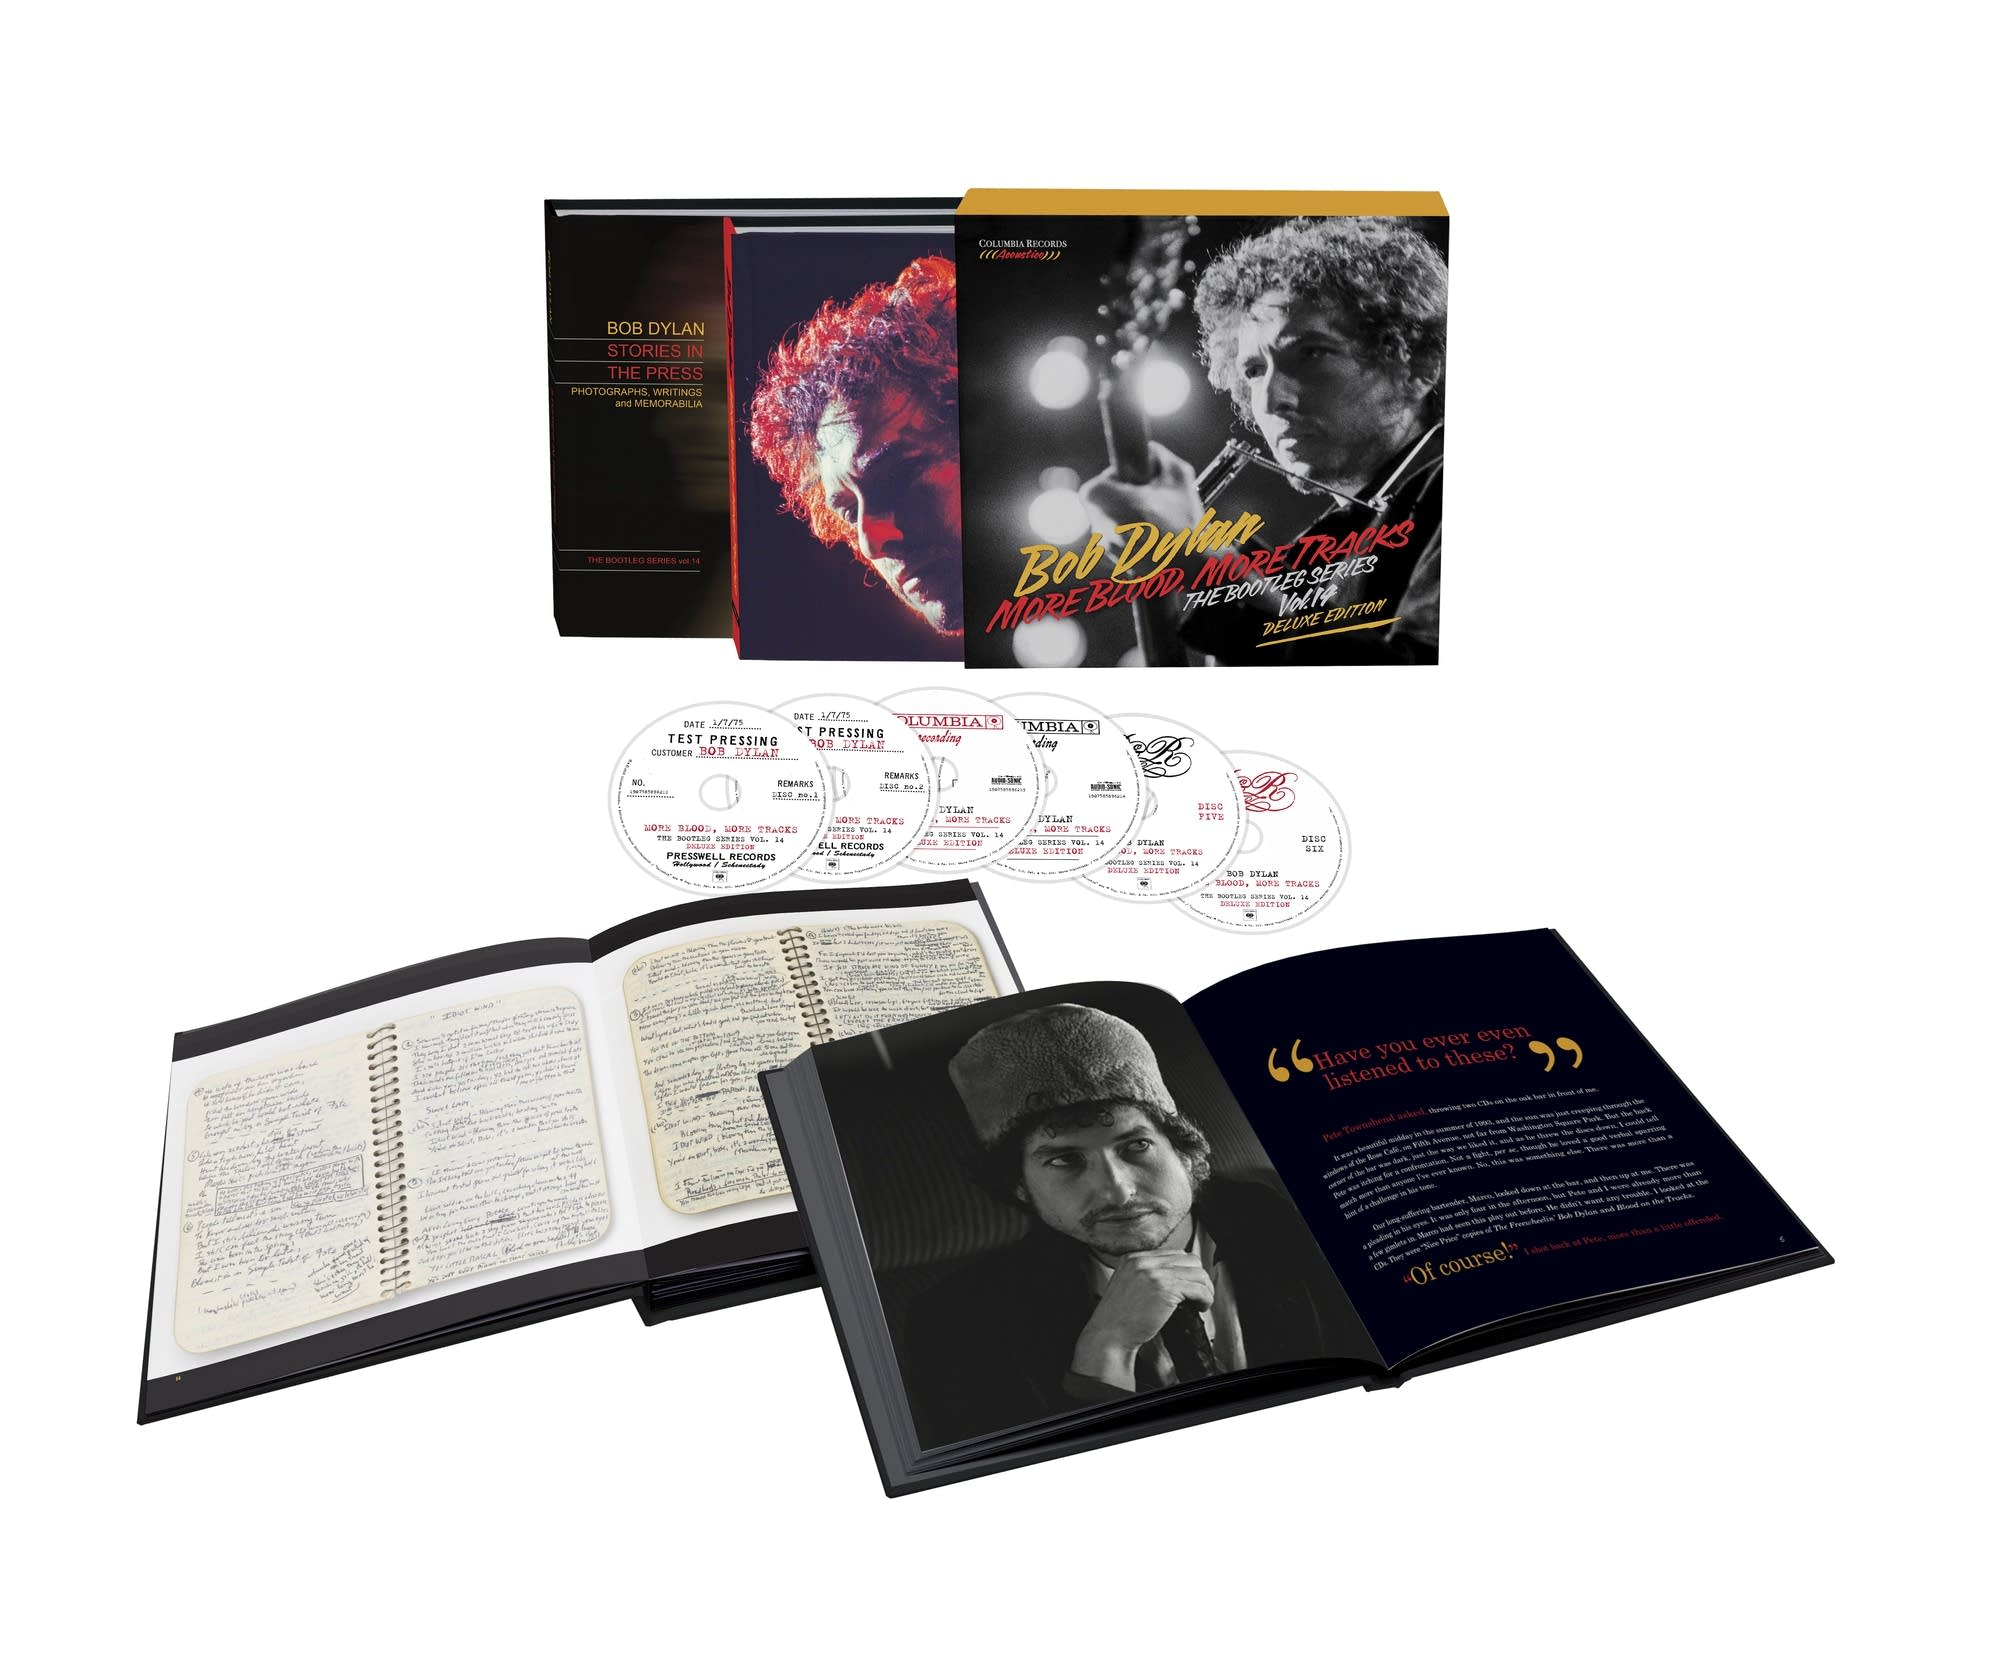 Bob Dylan, 'More Blood, More Tracks' deluxe box set